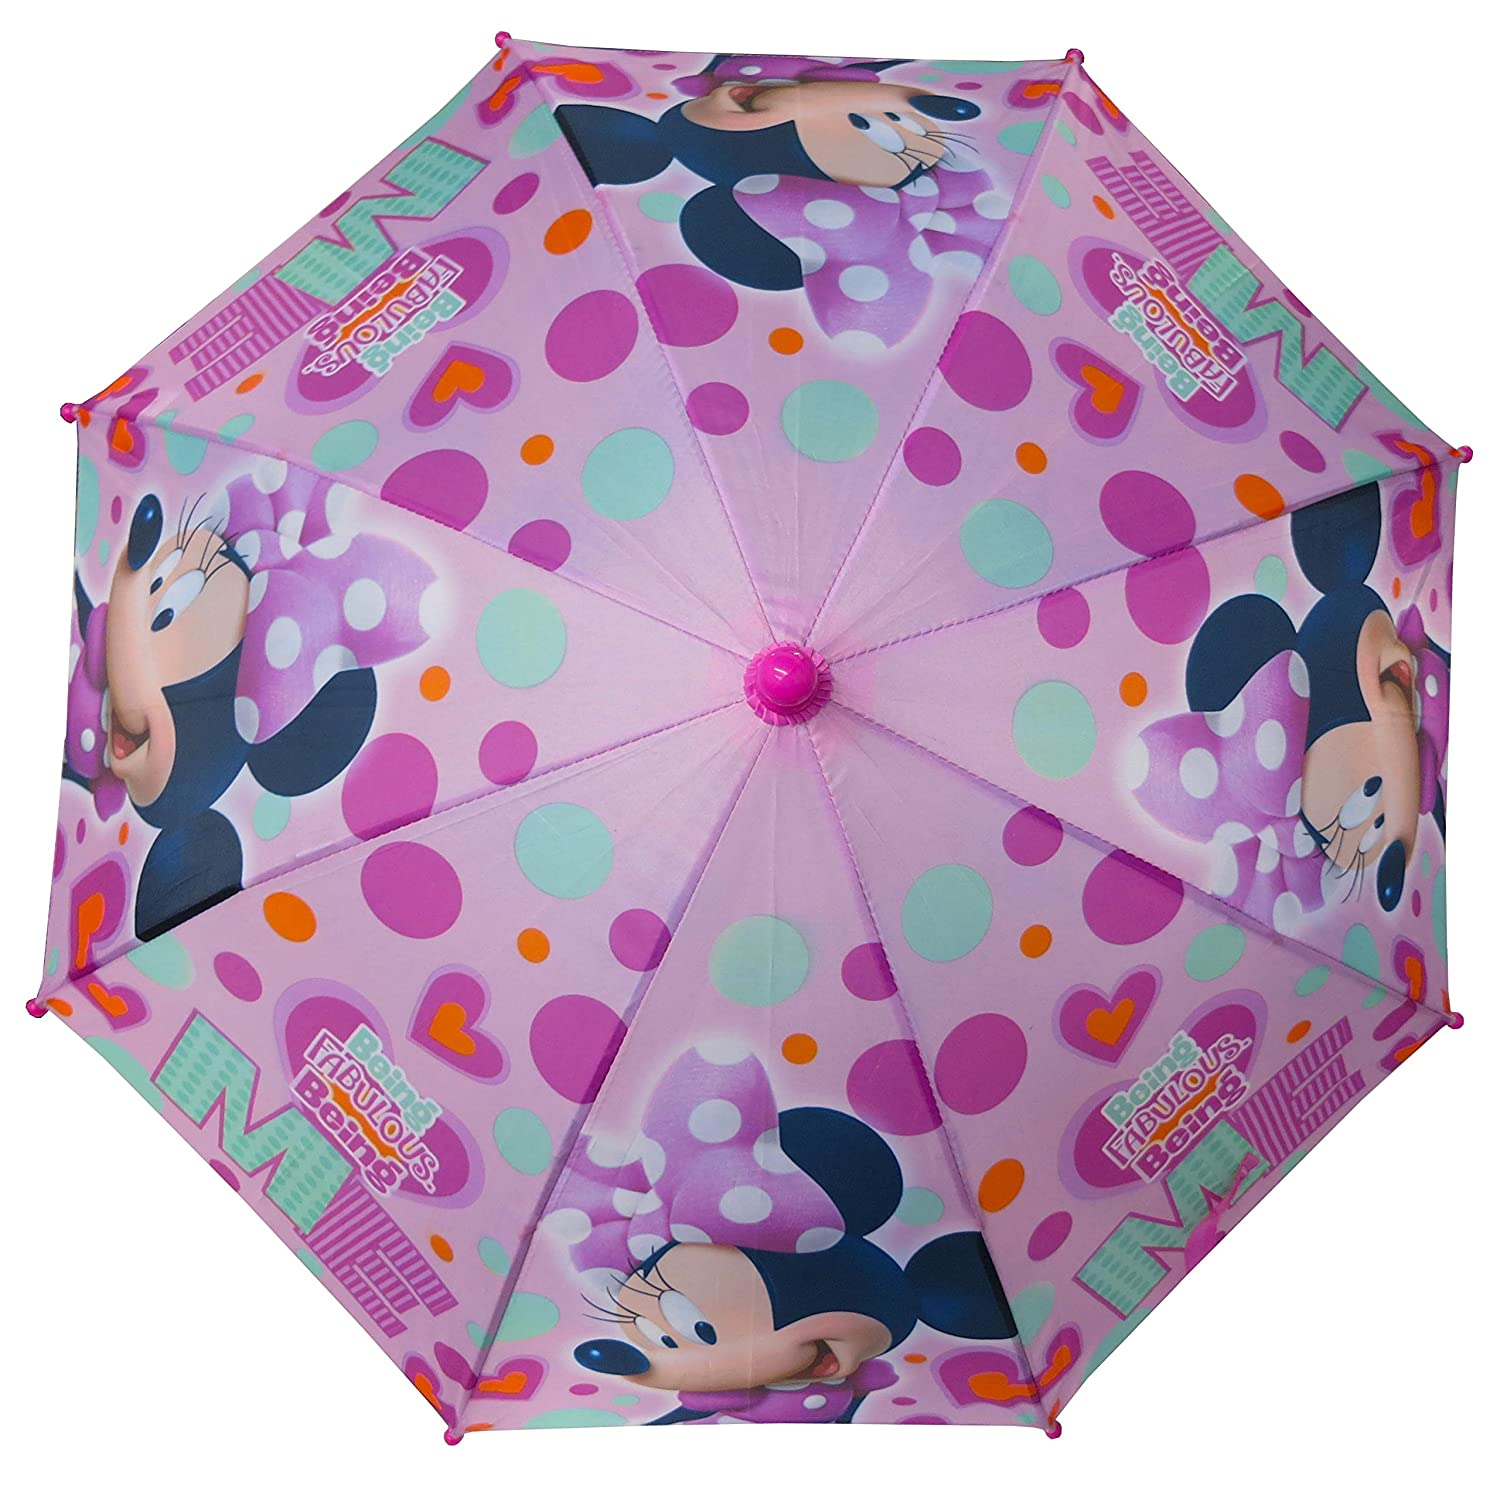 Amazon.com: Disney Minnie Mouse Umbrella - 3D handle